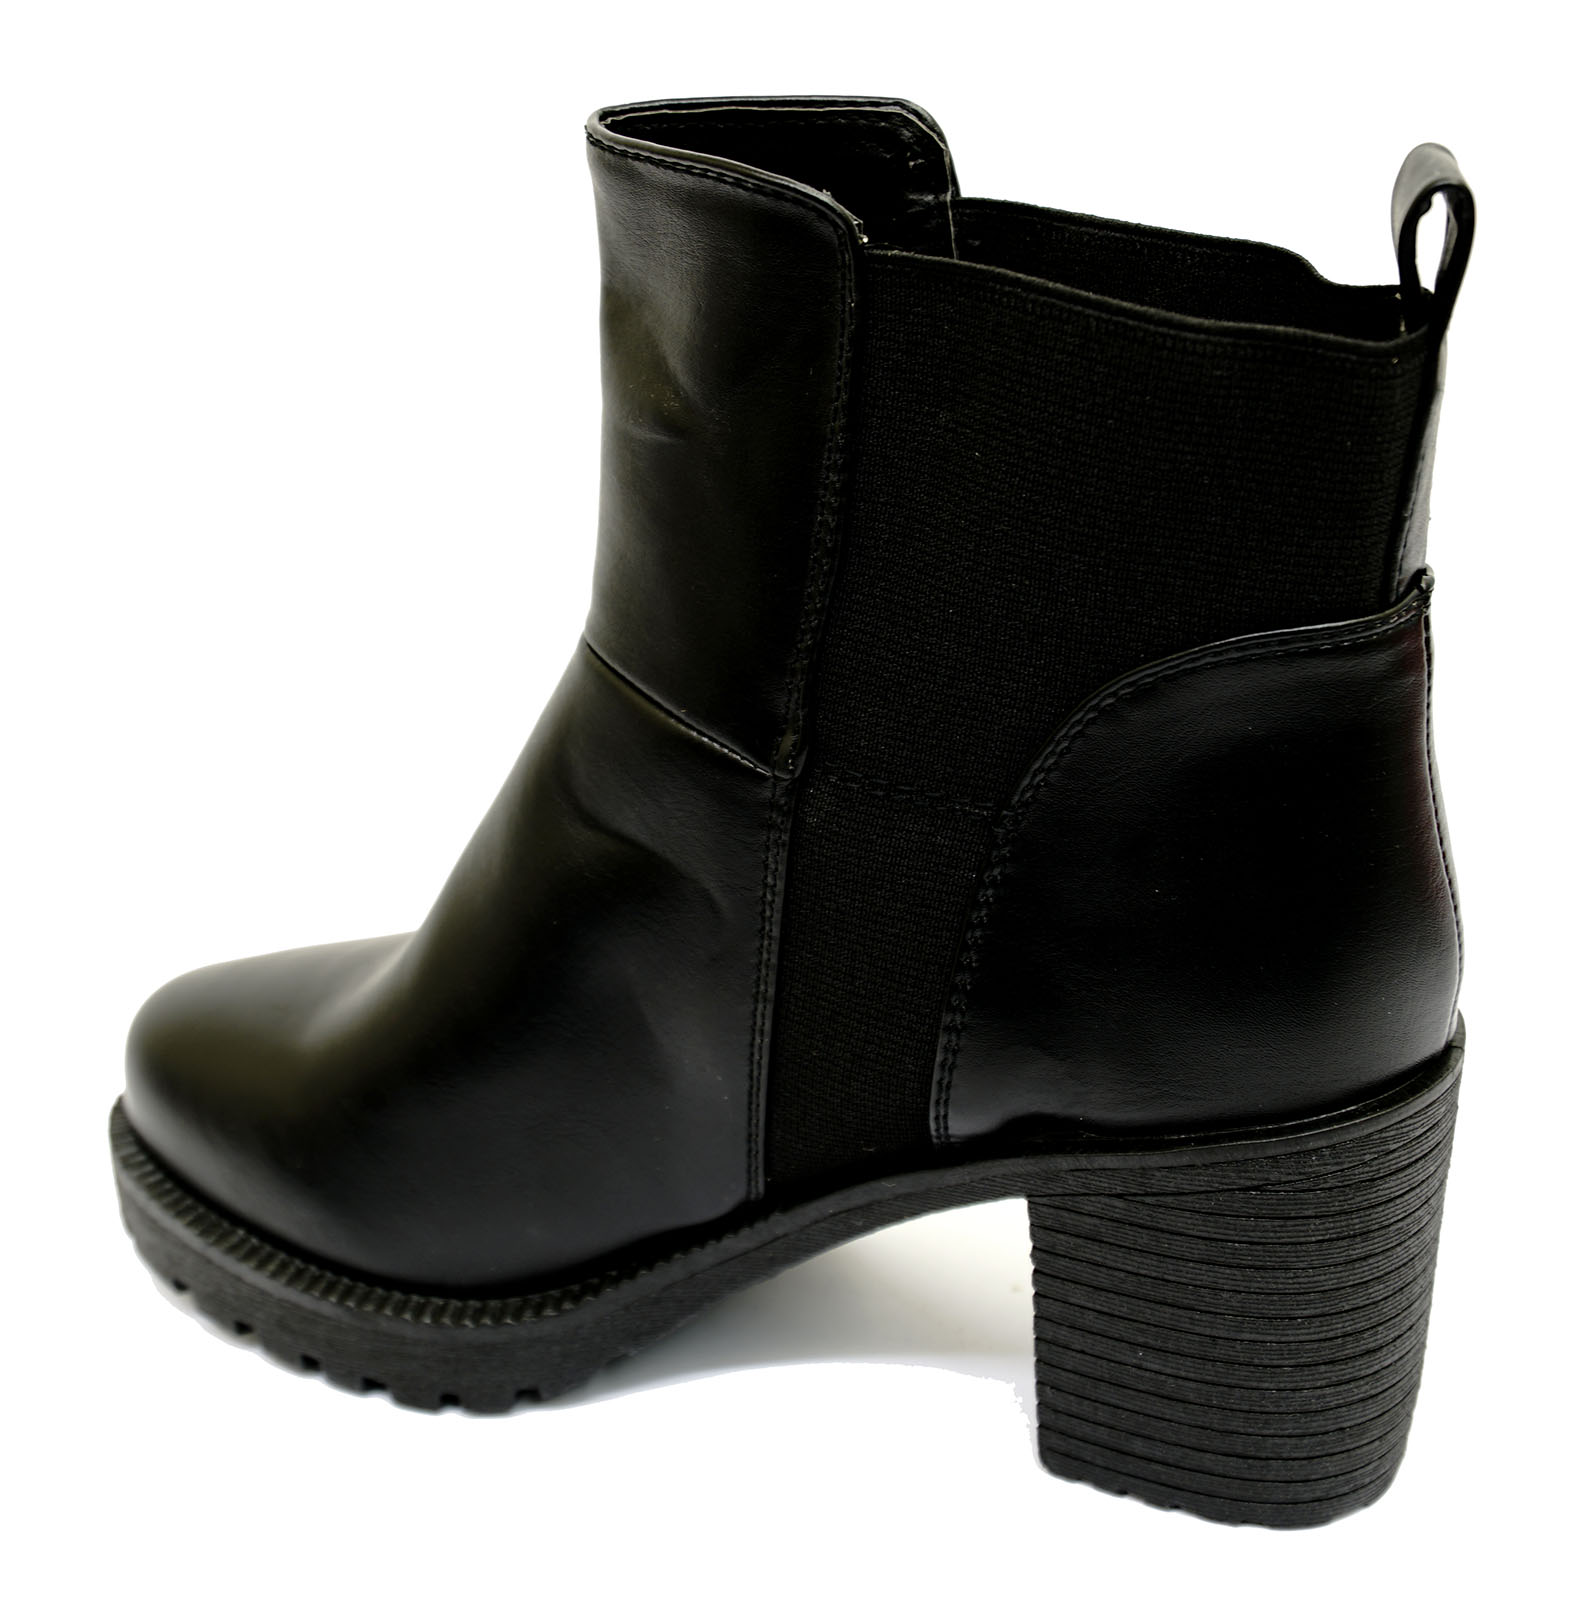 fd3b38fea08d Sentinel LADIES BLACK PULL-ON ANKLE BIKER CALF PLATFORM STRETCH CHUNKY  BOOTS SHOES 3-8